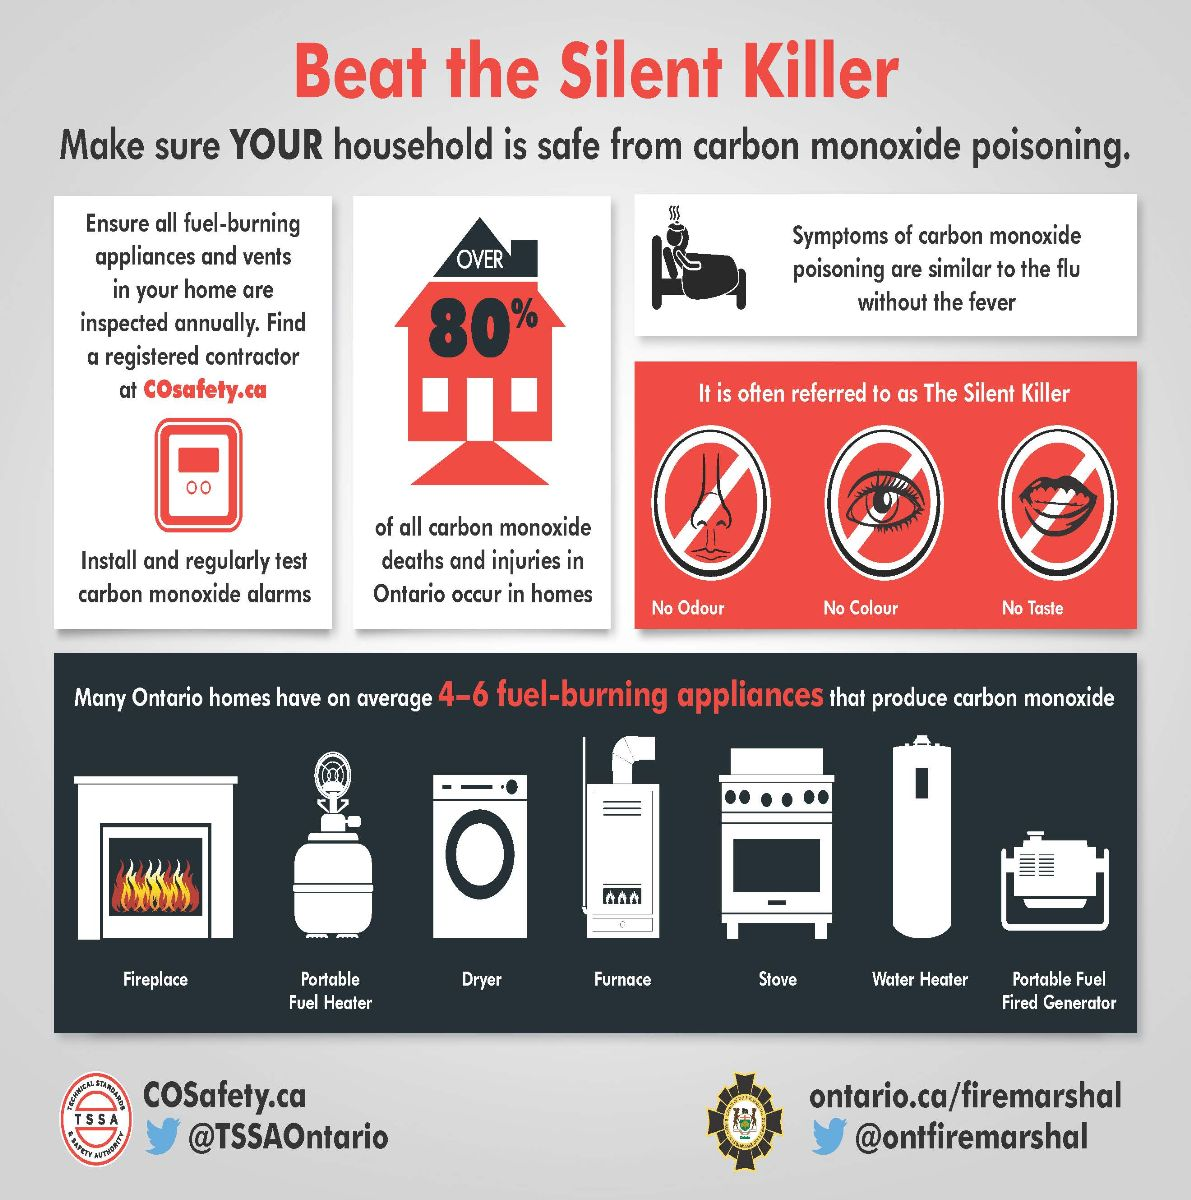 CARBON MONOXIDE ALARMS NOW REQUIRED IN HOMES